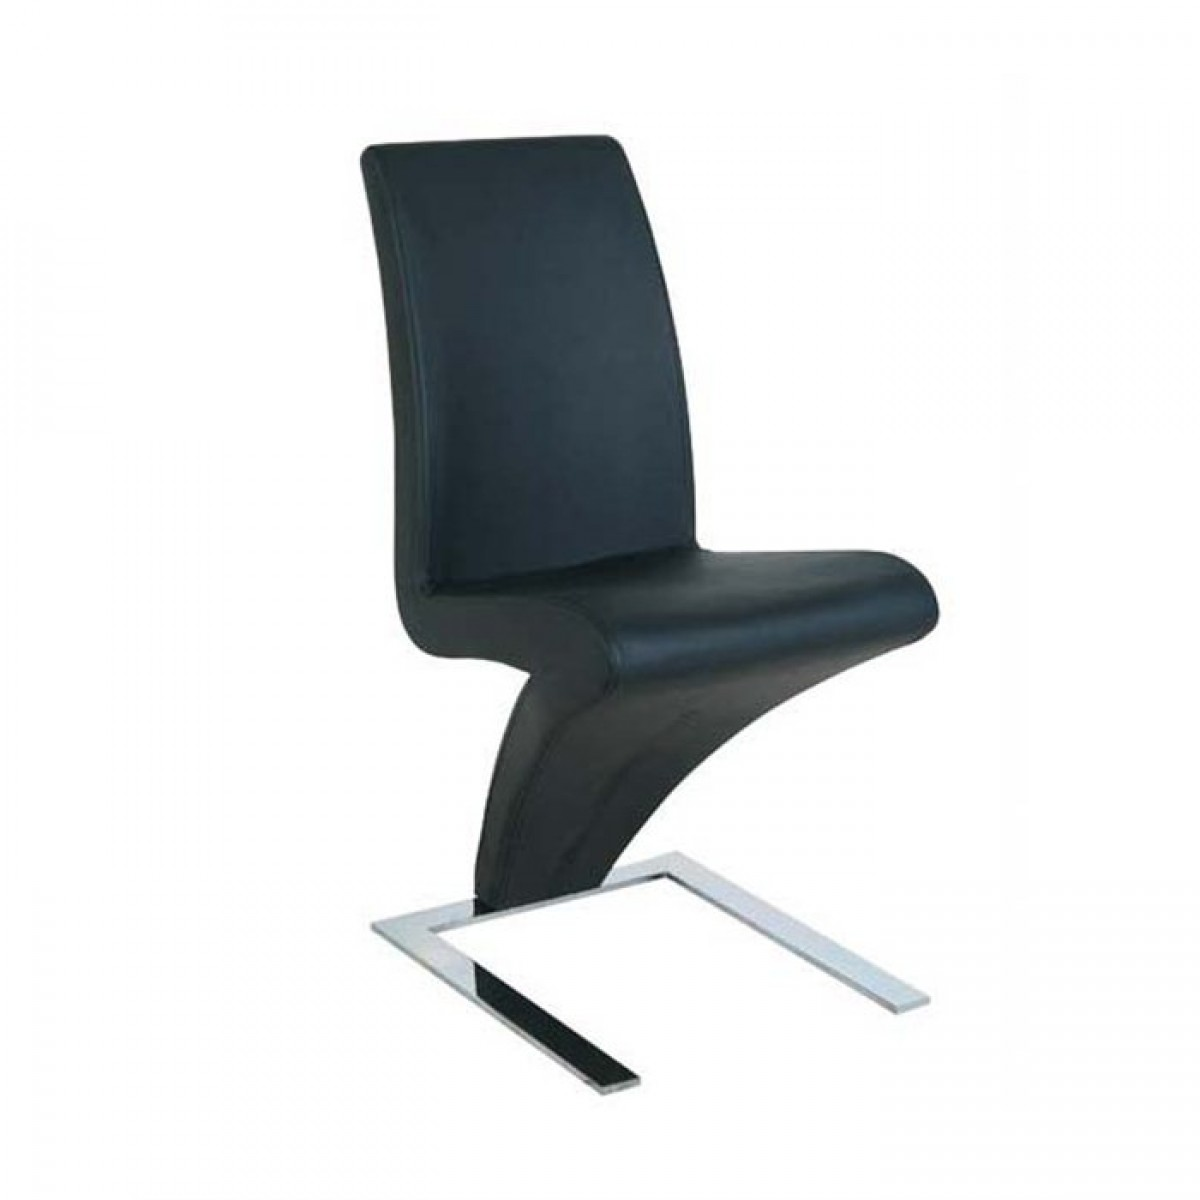 Chaise design z personnalisable chaises for Chaise noir design